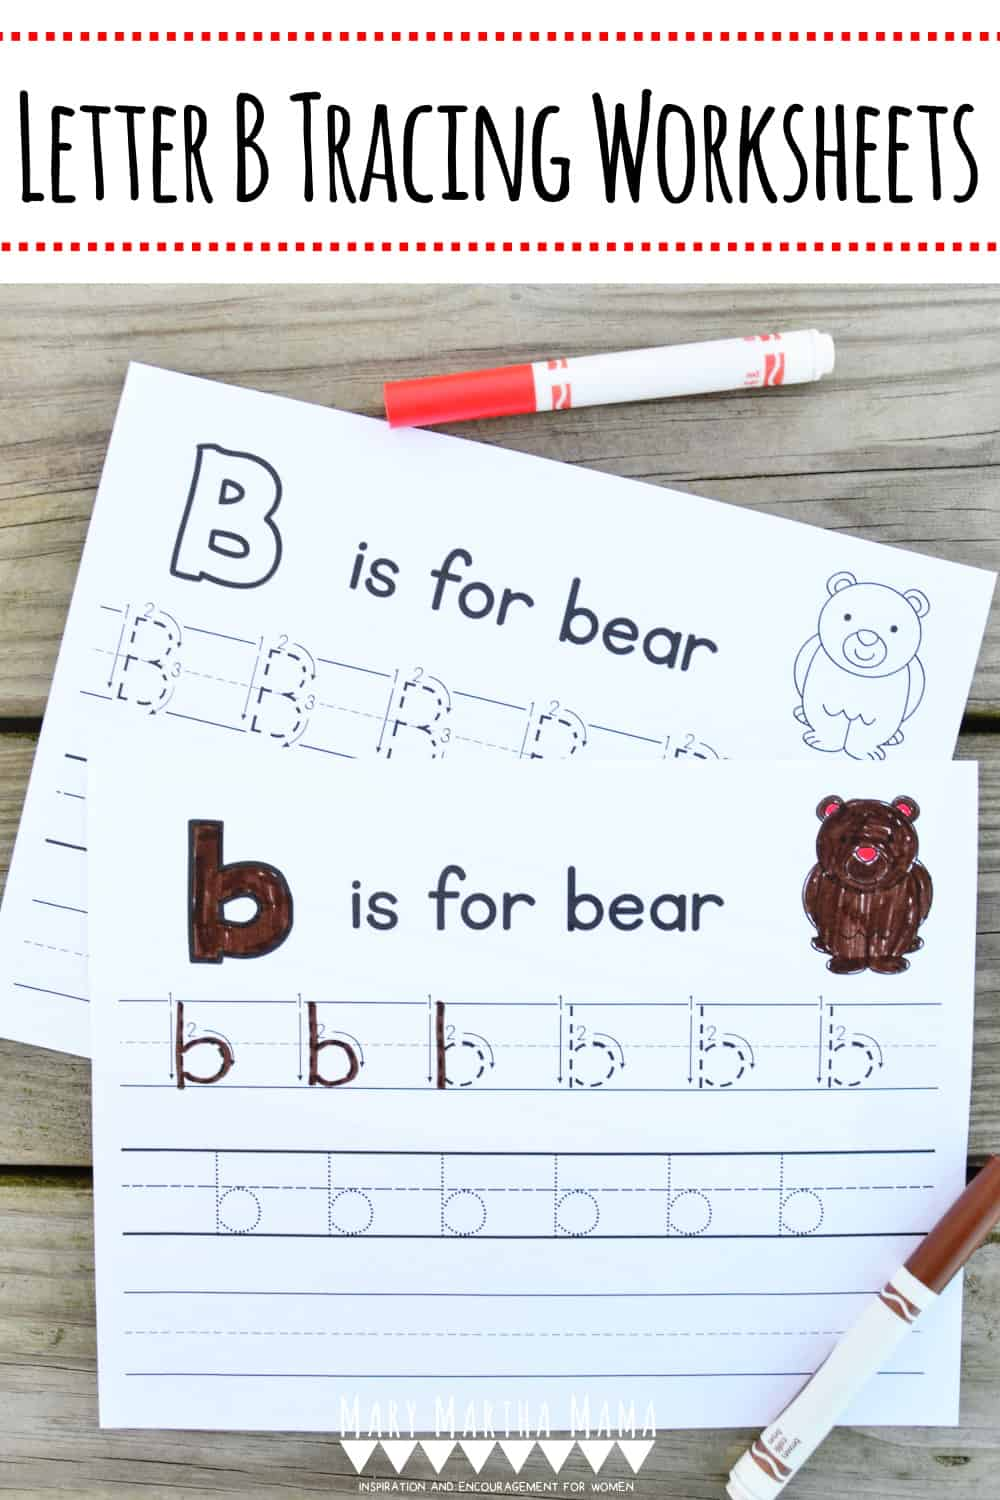 Working on proper letter formation with your child or students? Check out these free printable Letter B Tracing Worksheets.